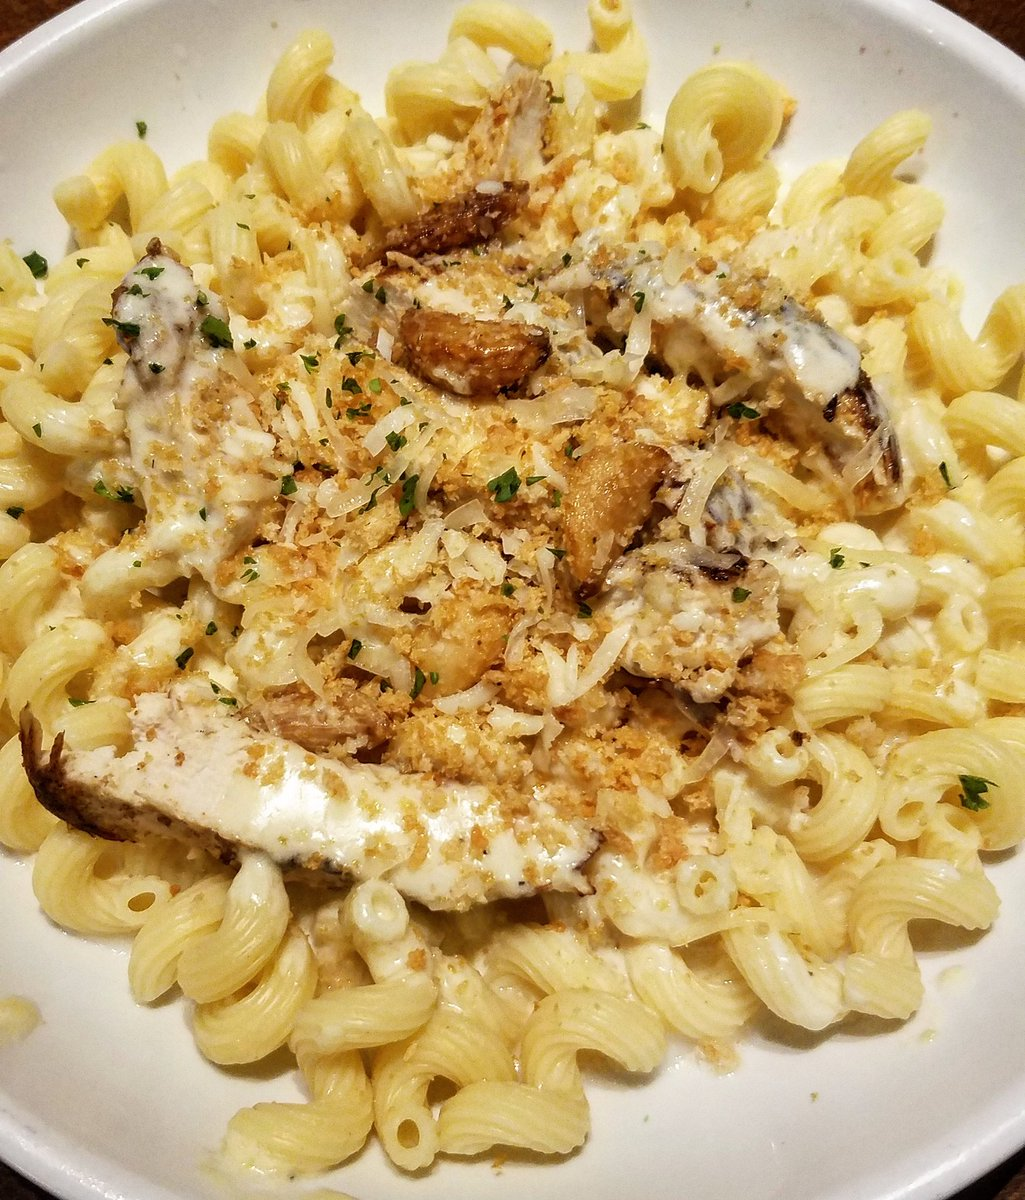 "Ͻ""ake Ͻ Ͻ'ite Ͻï½‹ On Twitter We Found Our Favorite Neverendingpastabowl Combination Cavatappi W Asiago Garlic Alfredo Gr Chicken So Good Pastapass Olivegarden Https T Co Upakm9cwl0"